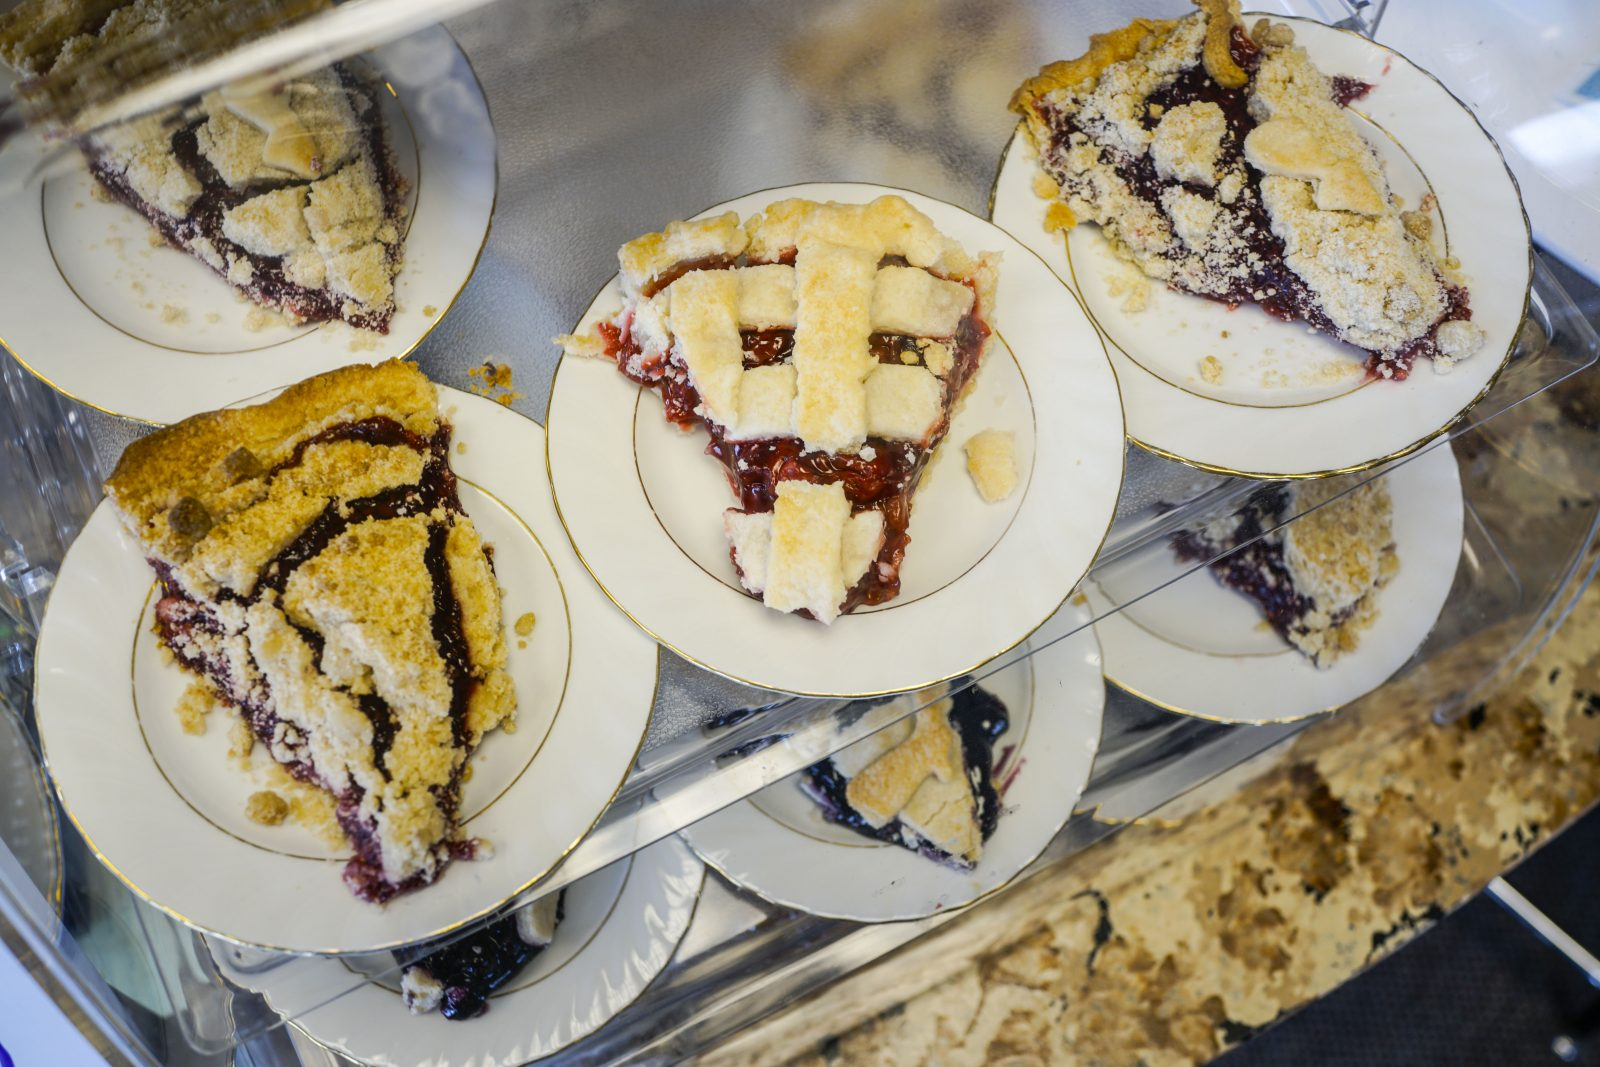 Homemade Pies Are On Display At The Village Kitchen Family Restaurant,  (Derek Gee/Buffalo News)